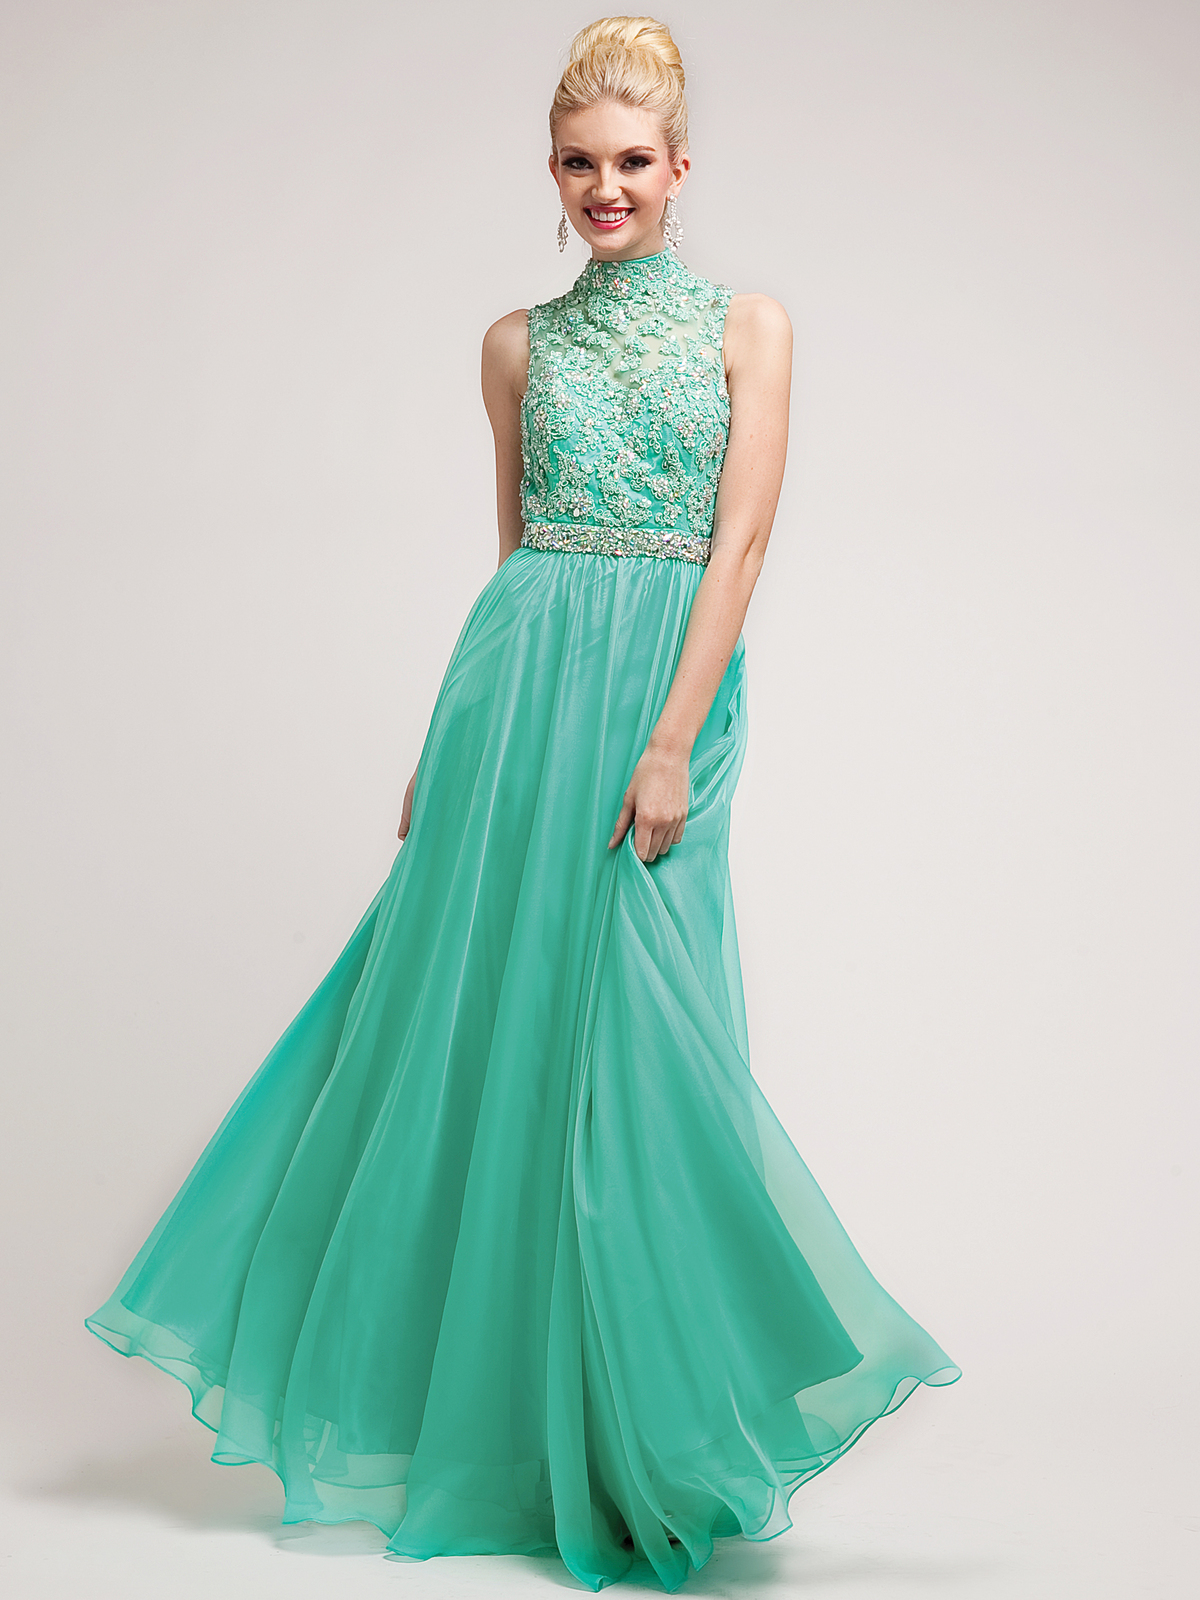 Prom Dresses Archives - Page 66 of 515 - Holiday Dresses